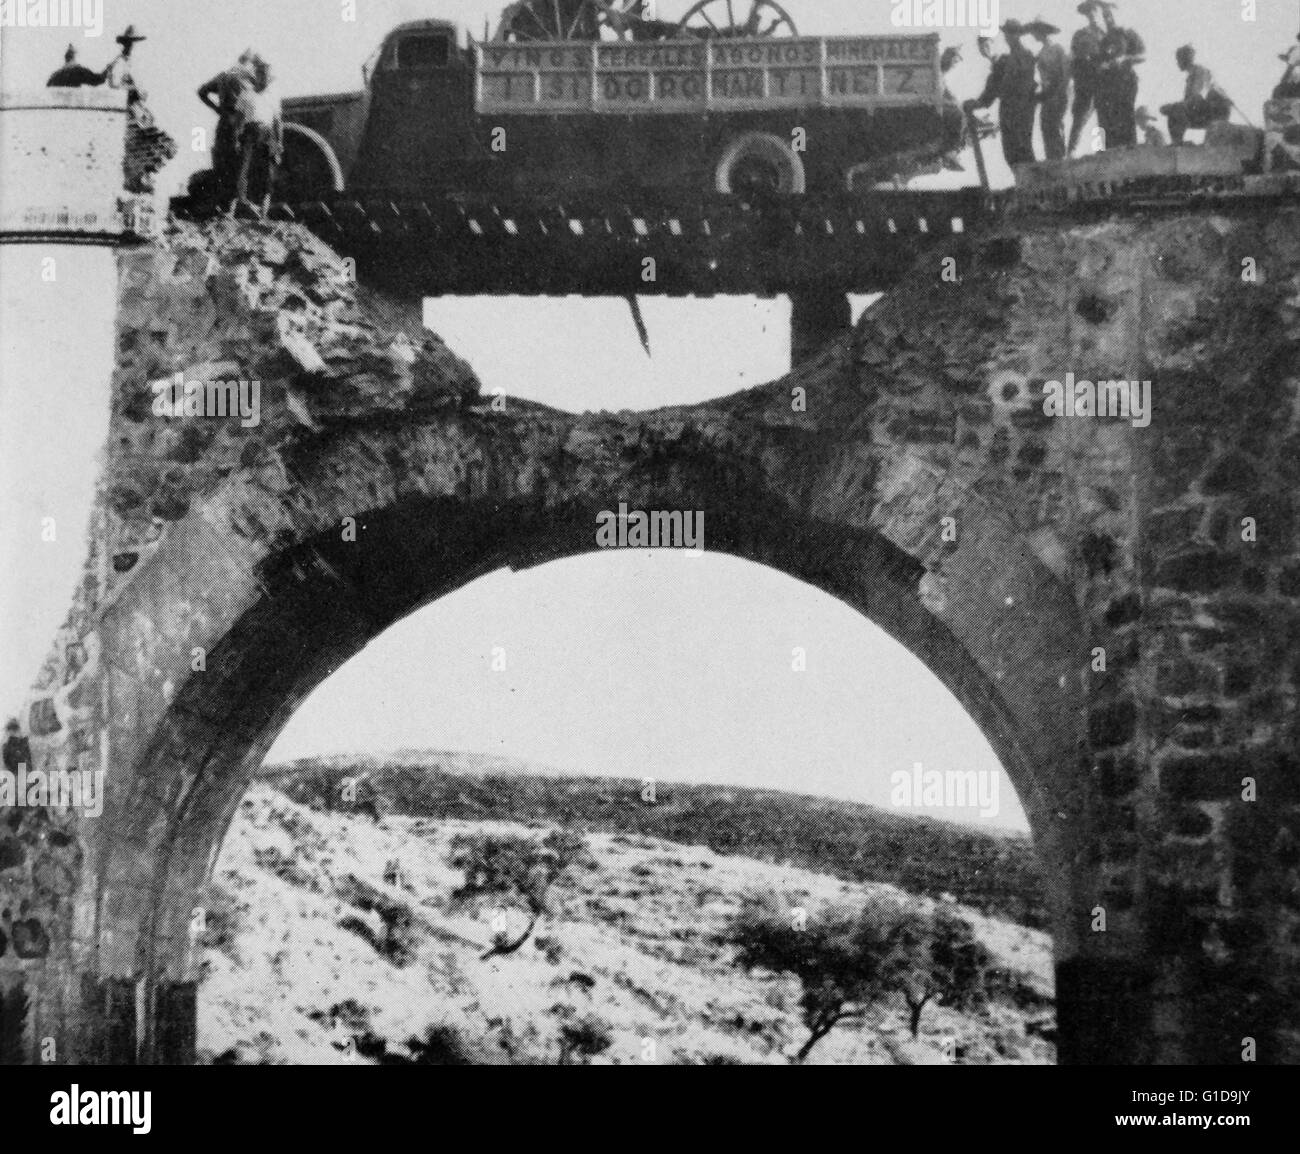 Nationalist troops cross a badly damaged bridge during the Spanish Civil War 1936 - Stock Image